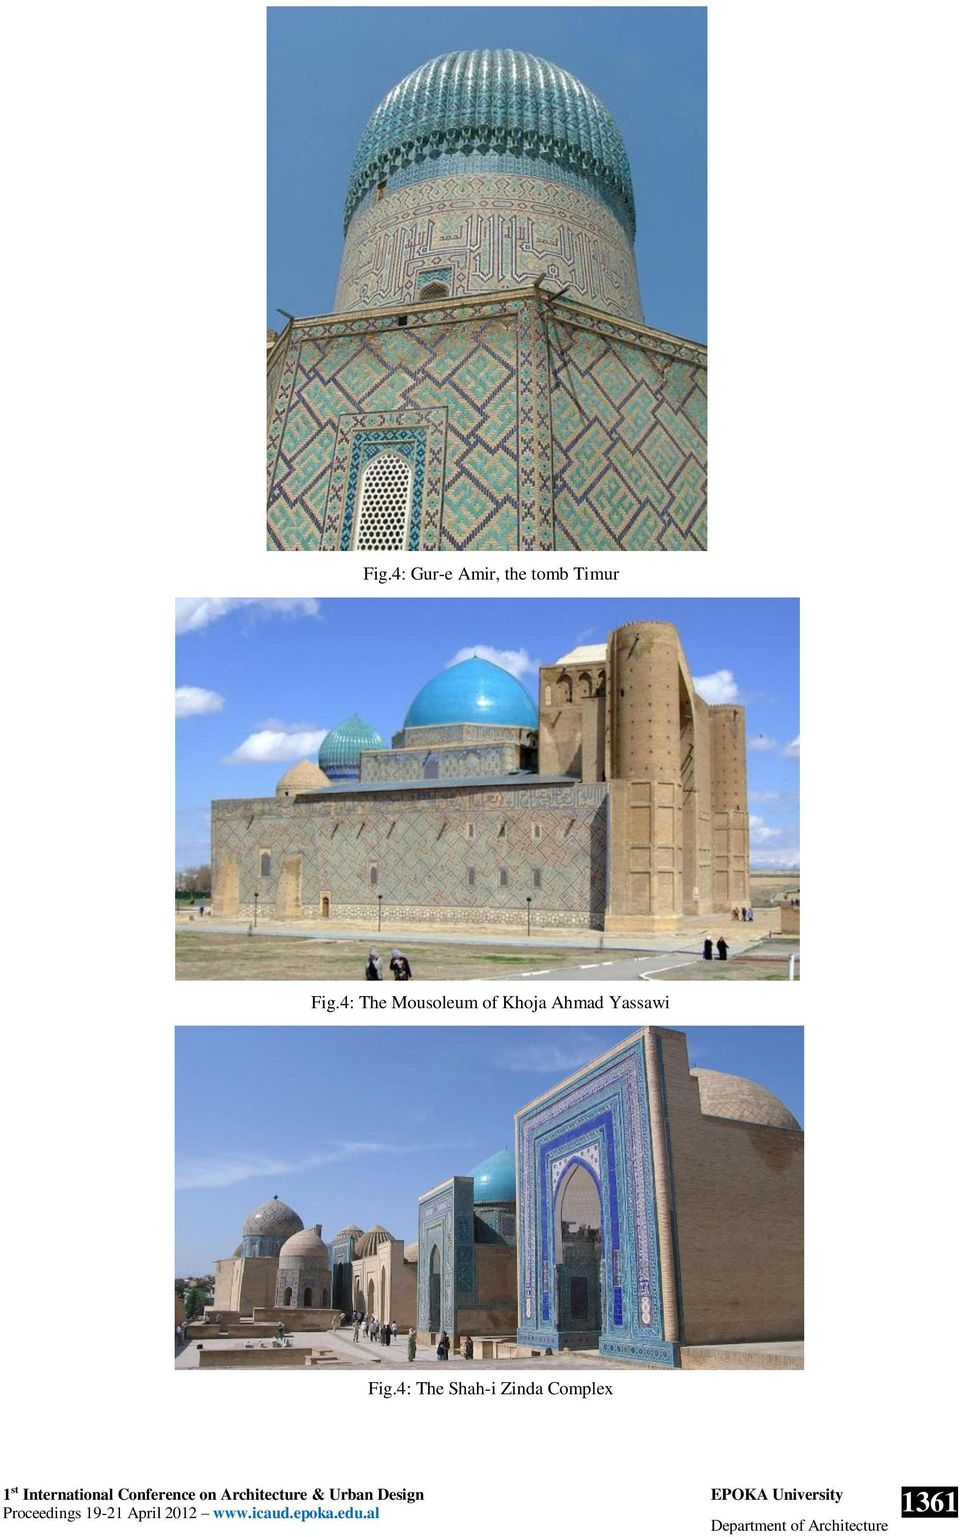 4: The Mousoleum of Khoja